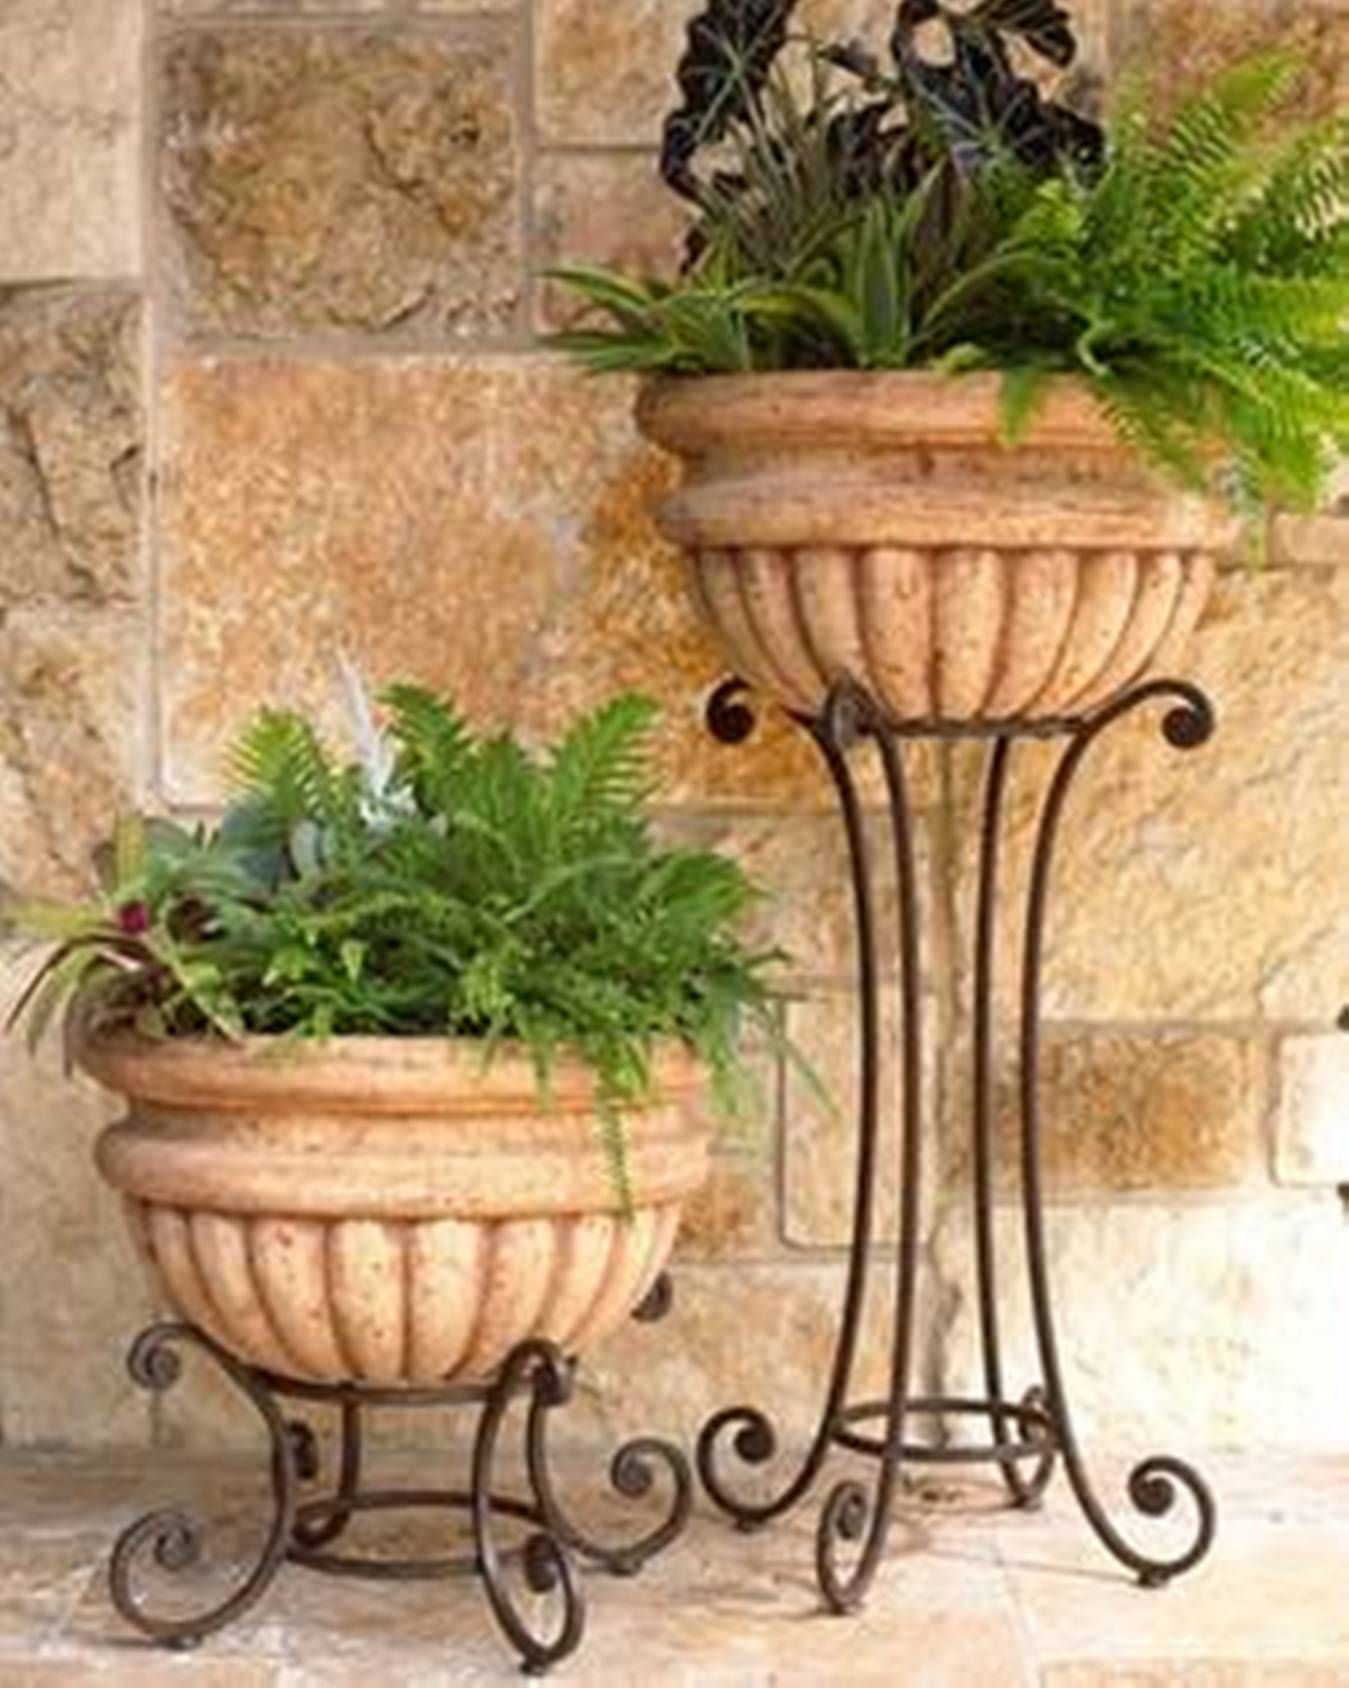 Wrought iron outdoor decor - Home Design And Decor Wrought Iron Planters Tall And Short Wrought Iron Planters